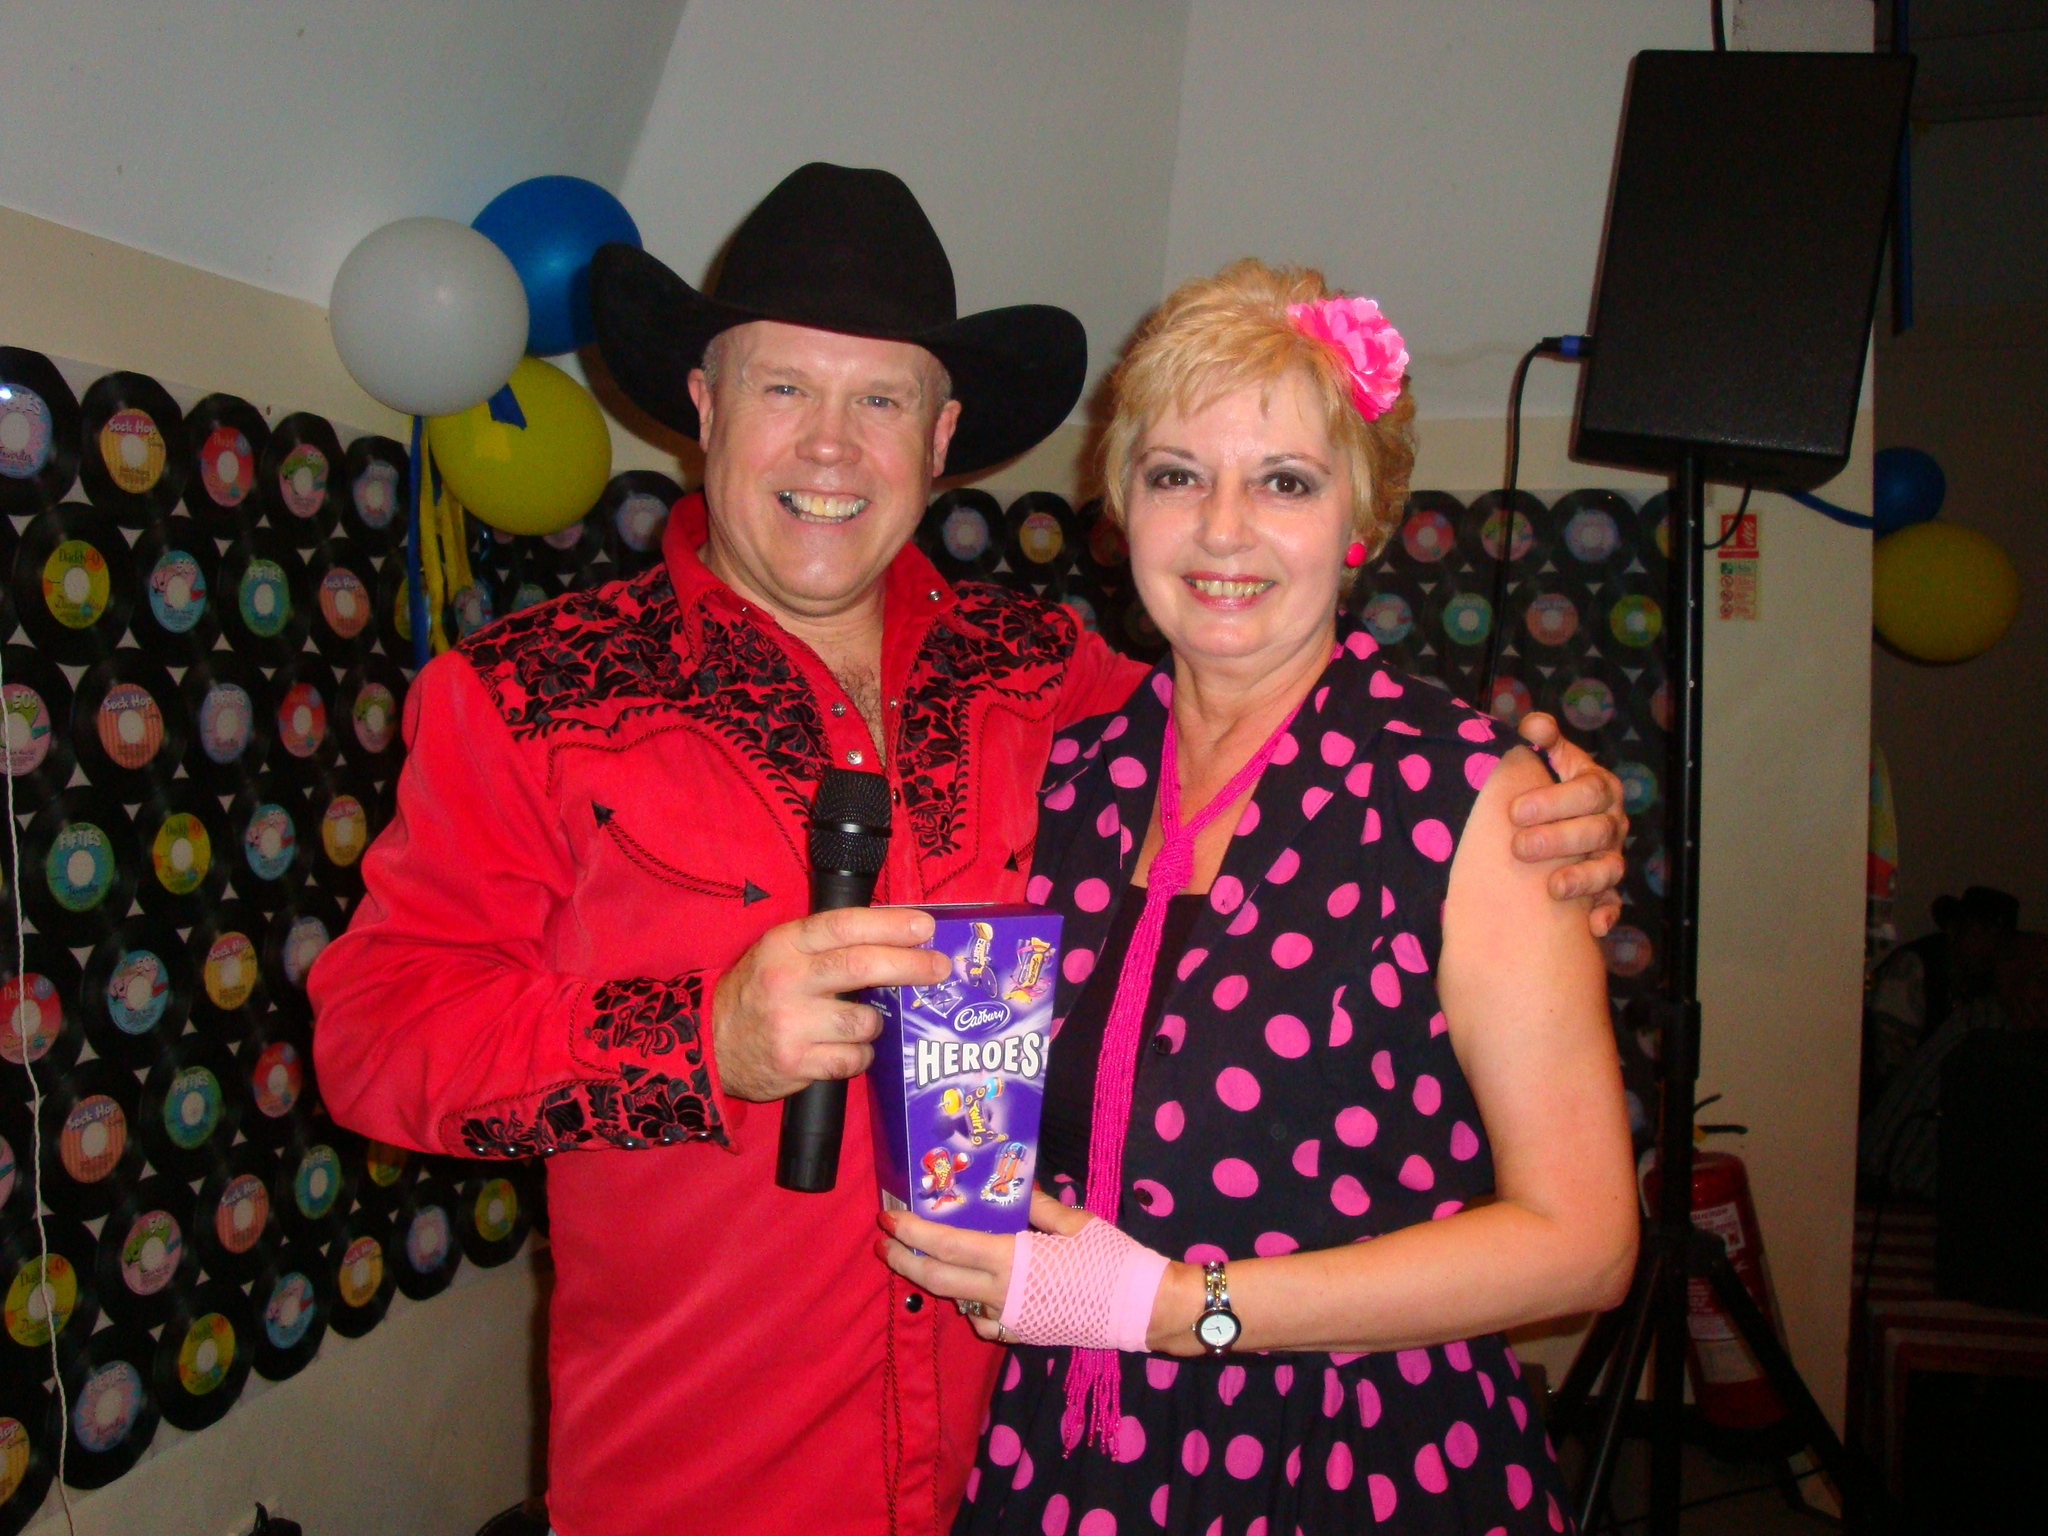 Alan Gregory presenting Sandy with best prize for fancy dress costume - New Year 2011